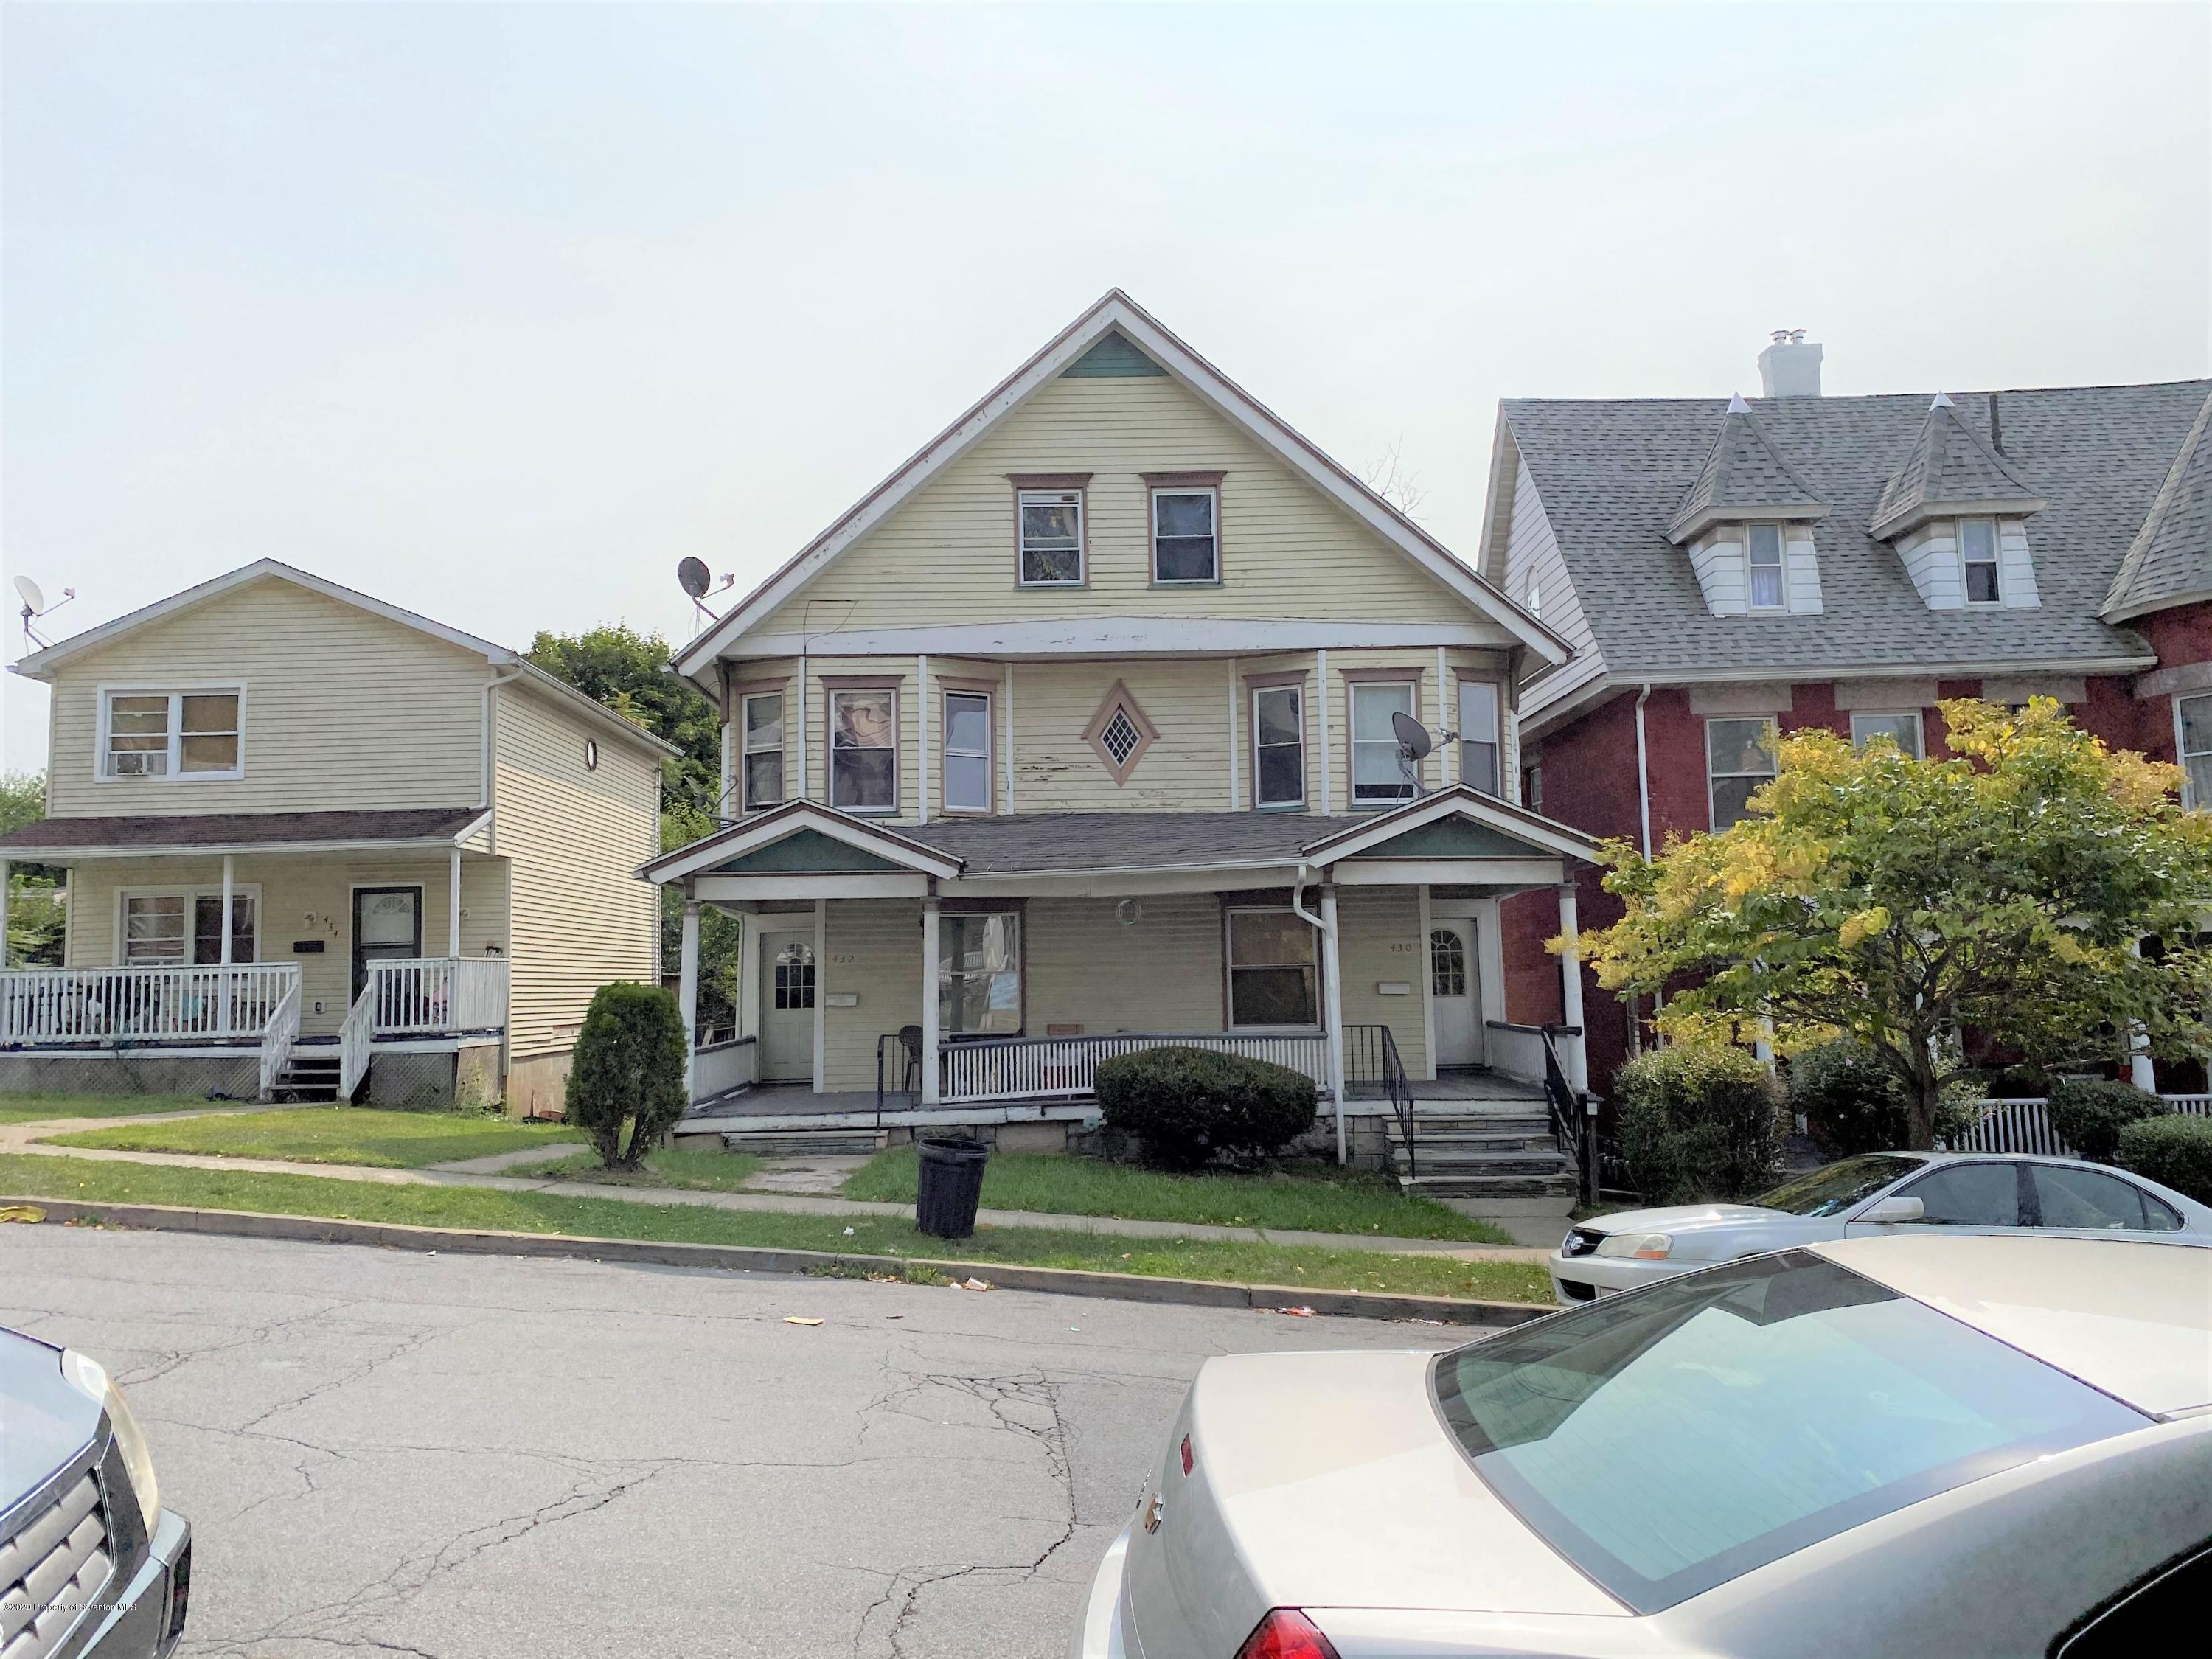 430-32 Irving Ave, Scranton, Pennsylvania 18510, ,Multi-Family,For Sale,Irving,20-3868